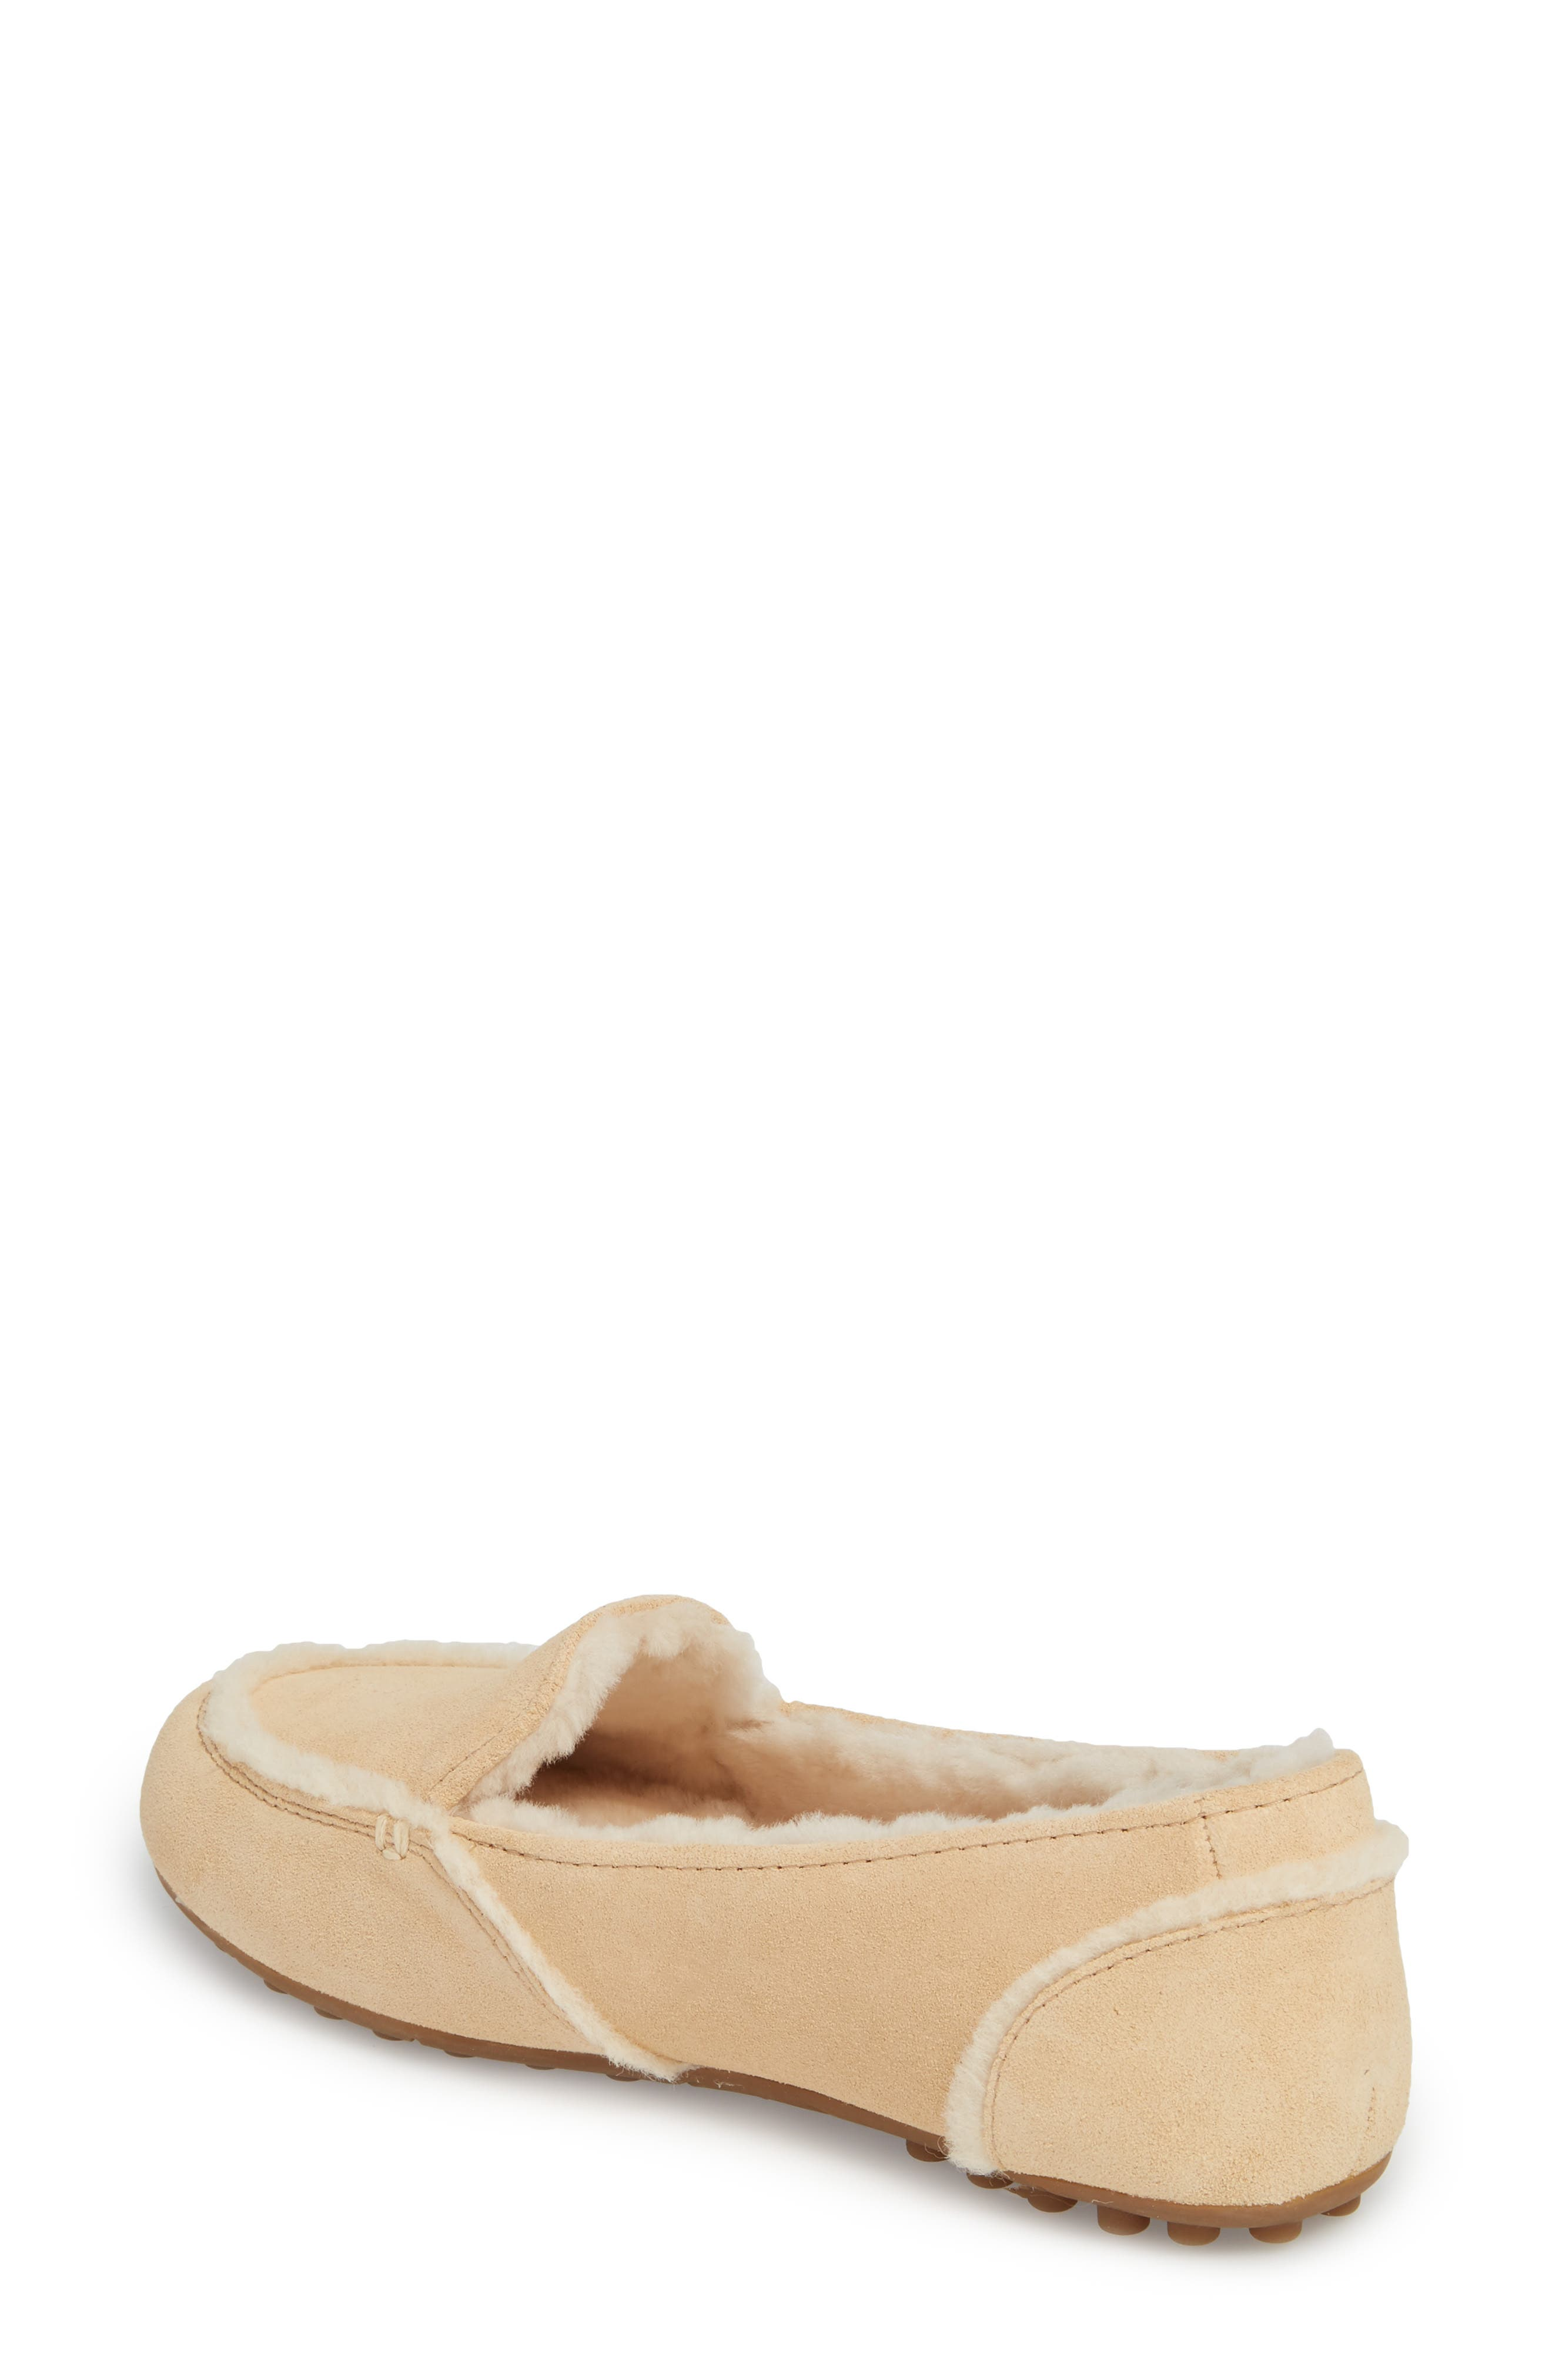 Hailey Slipper,                             Alternate thumbnail 2, color,                             Beige Suede